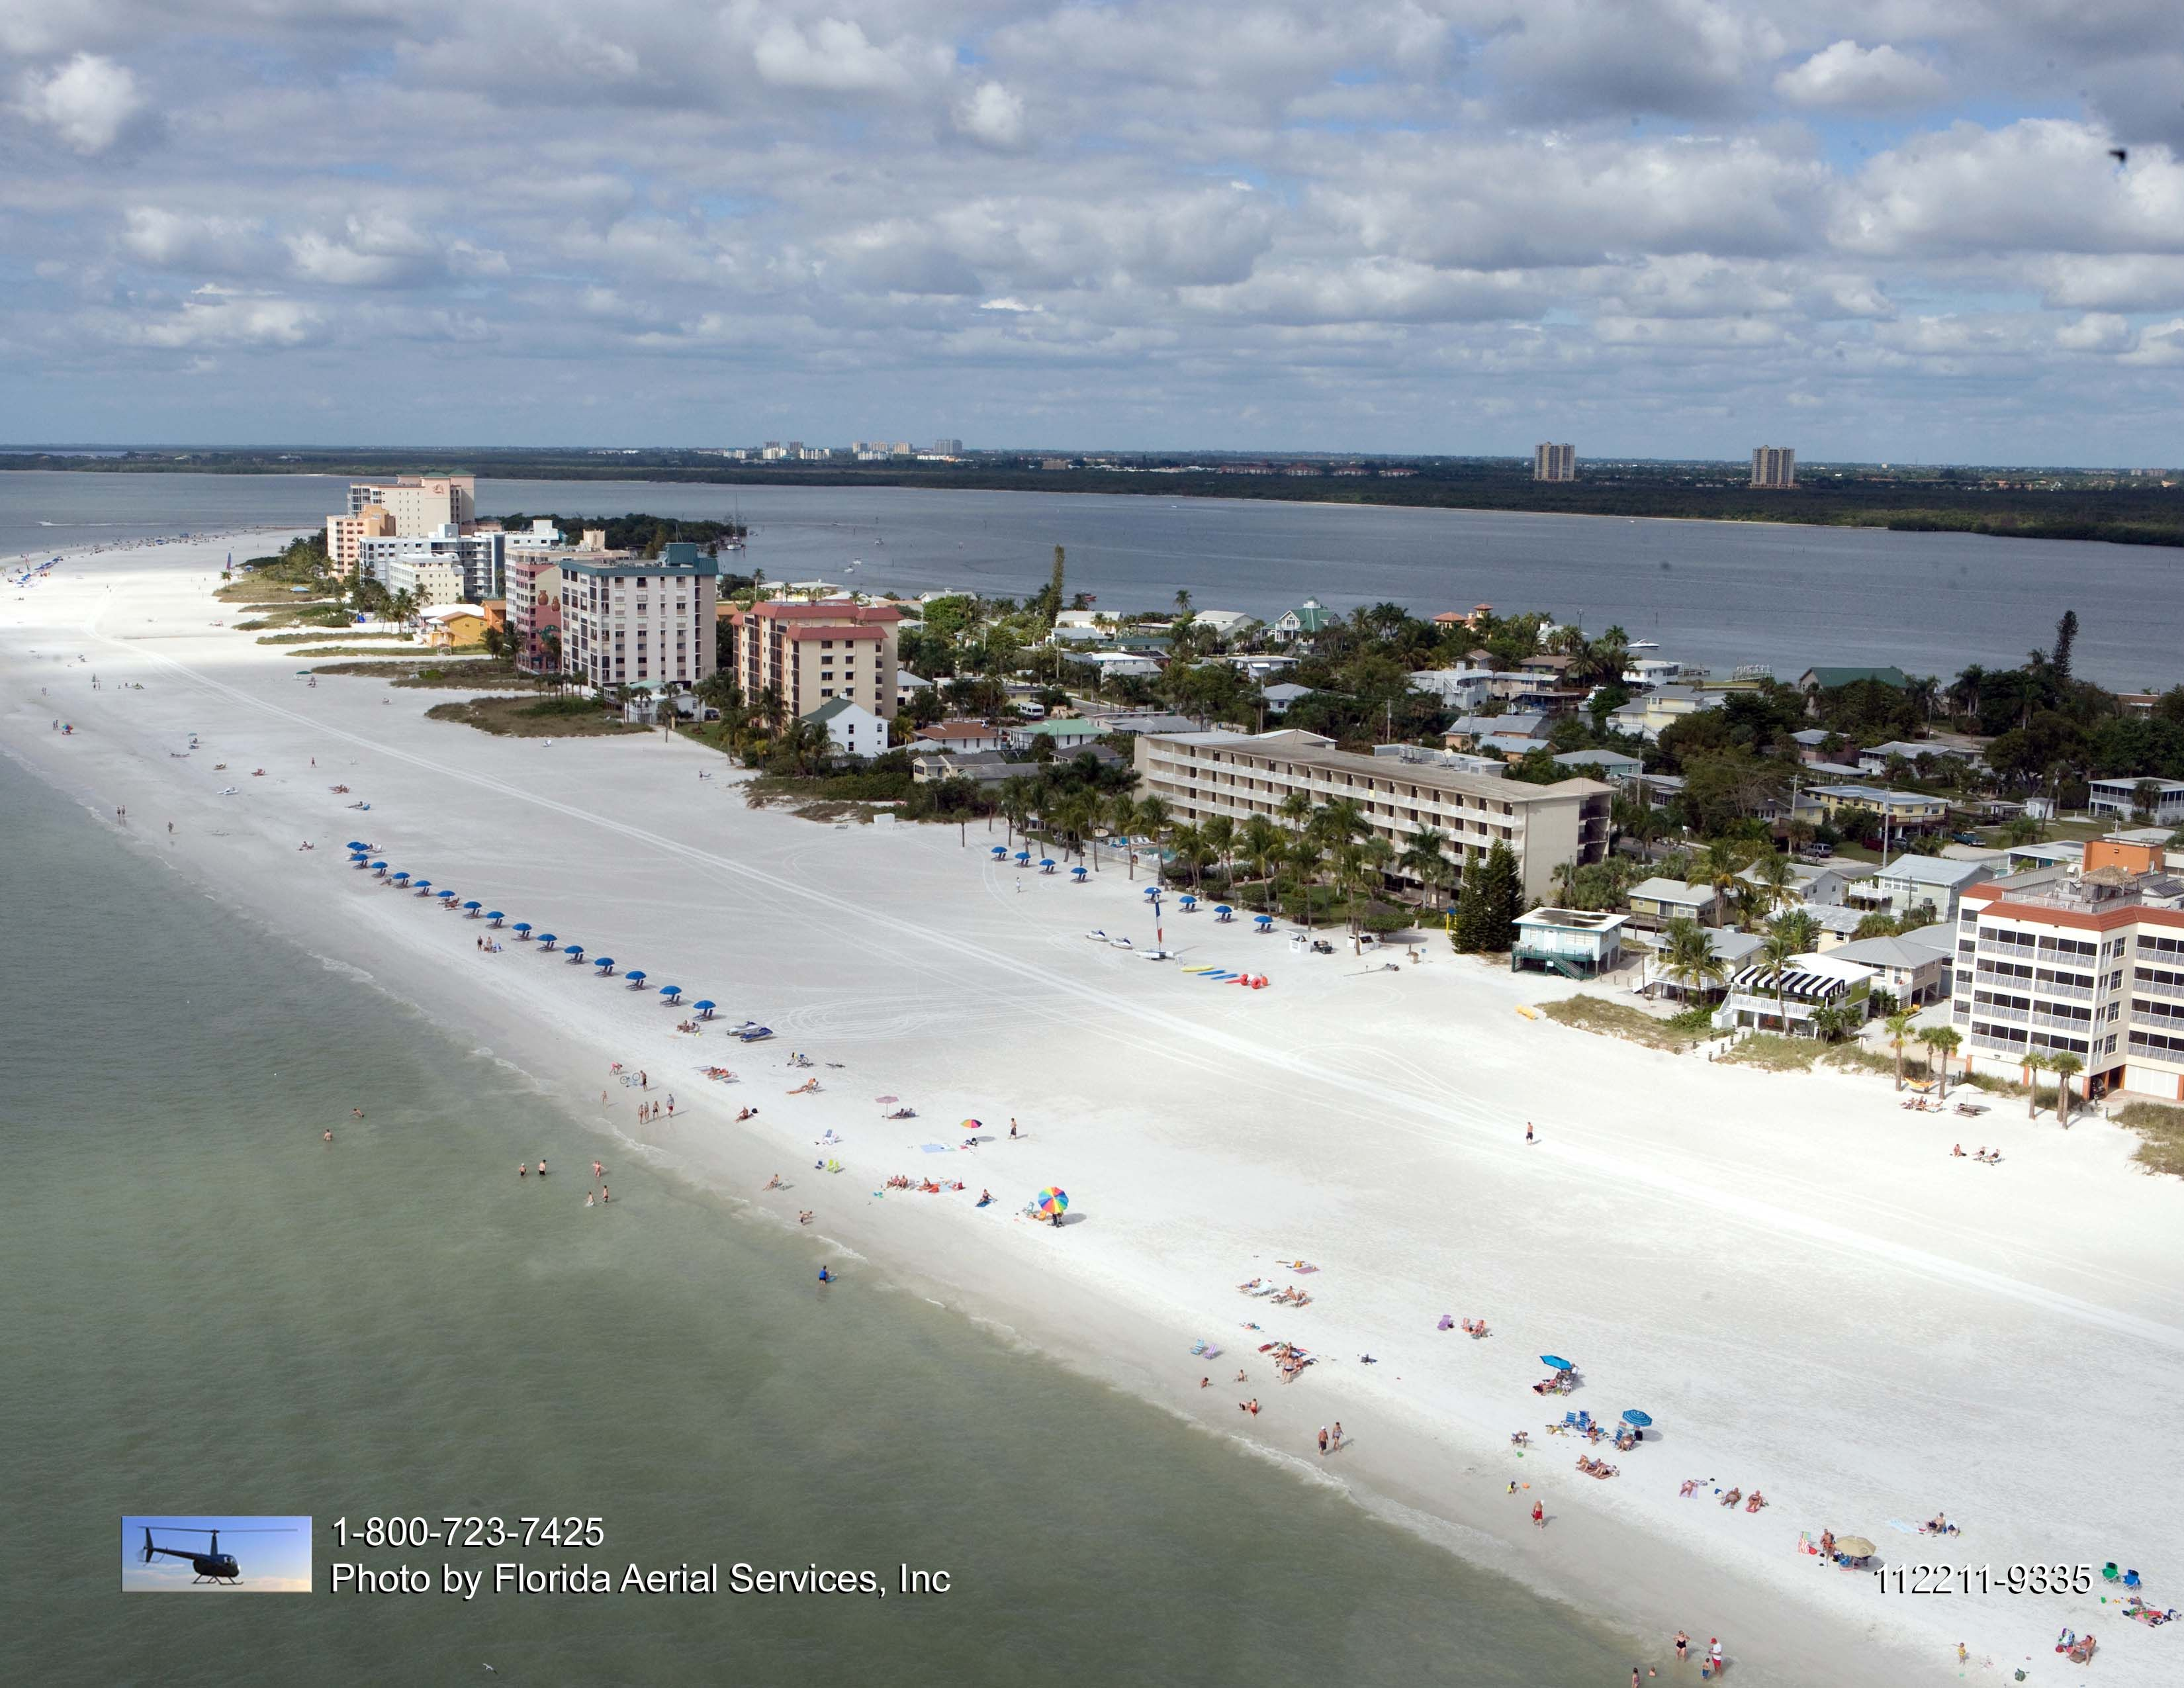 Aerial View Of Best Western Plus Beach Resort On The North End Fort Myers Florida